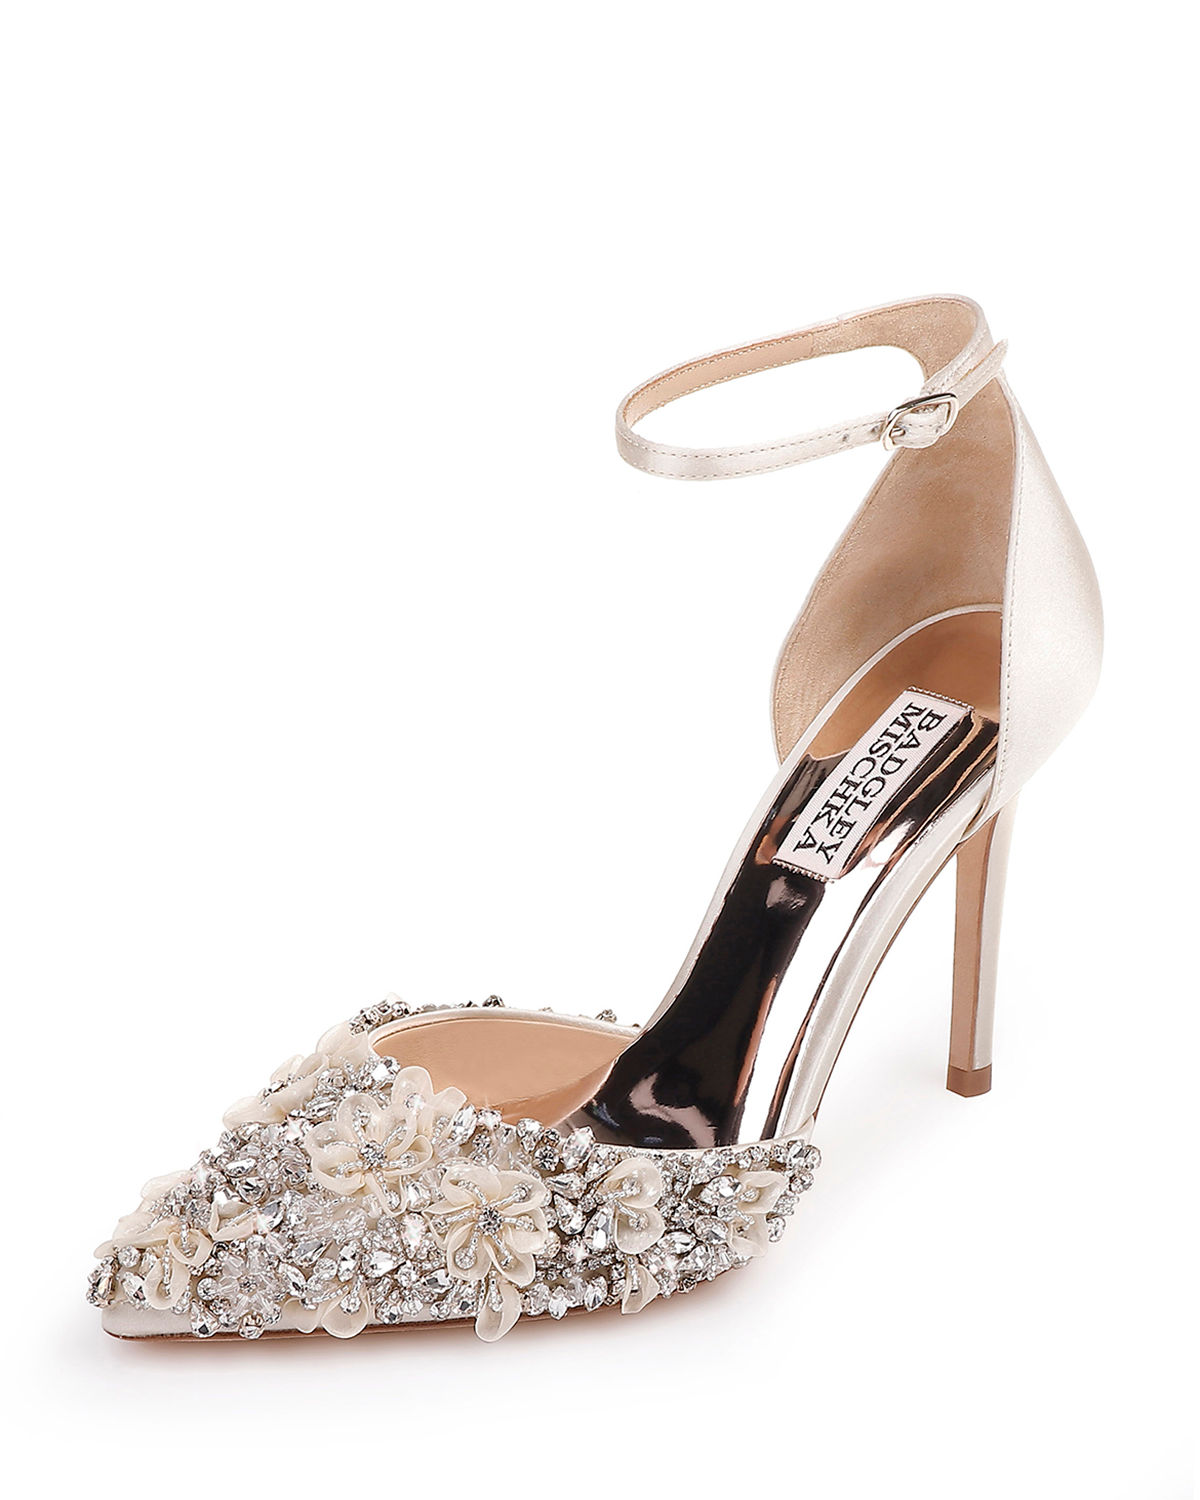 a393ca2d47cb4 Badgley Mischka Fey Embellished Satin Ankle-Wrap Pumps | Neiman Marcus